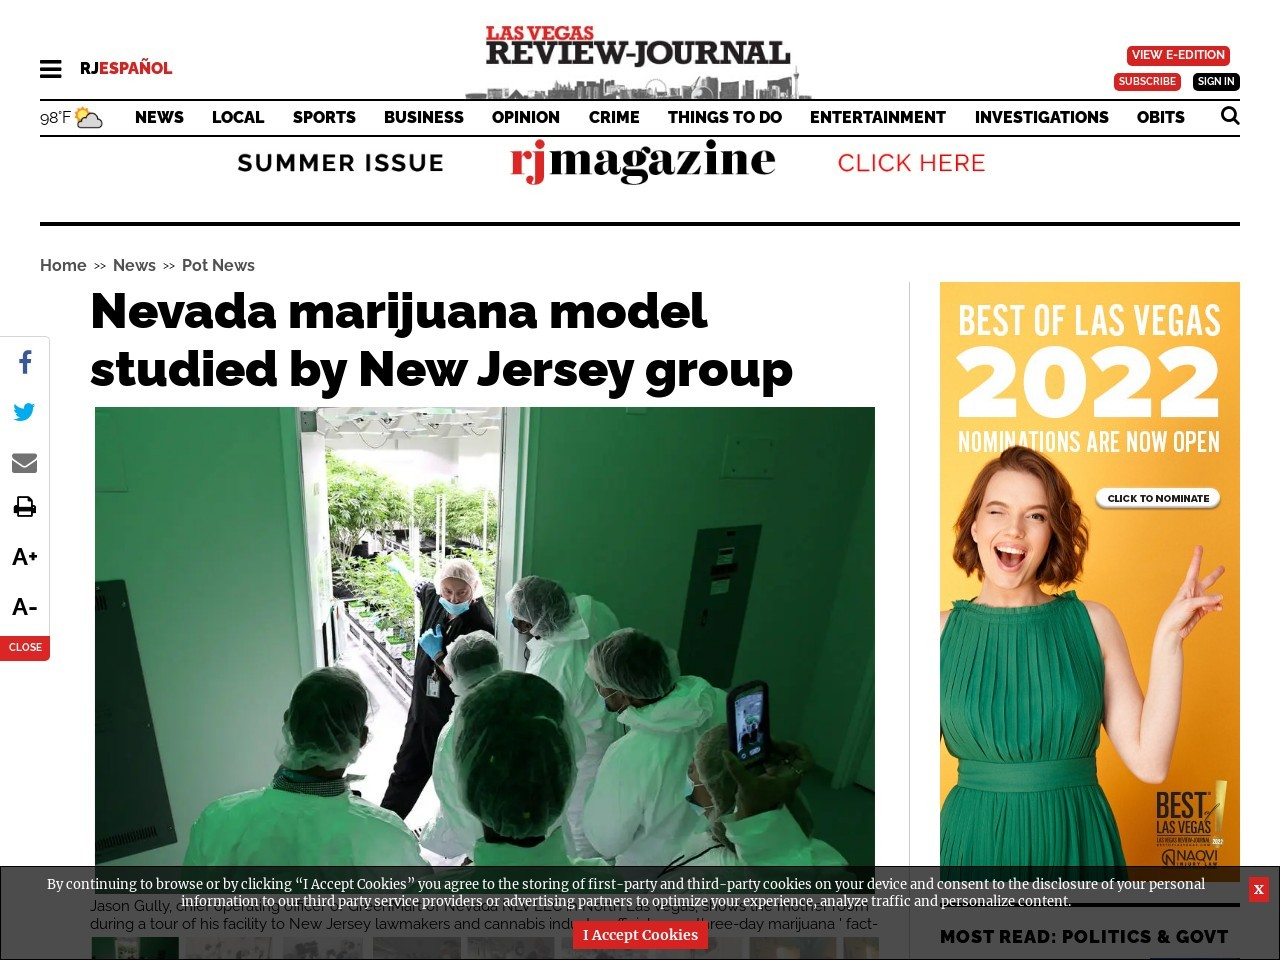 Nevada marijuana model will be studied by New Jersey group